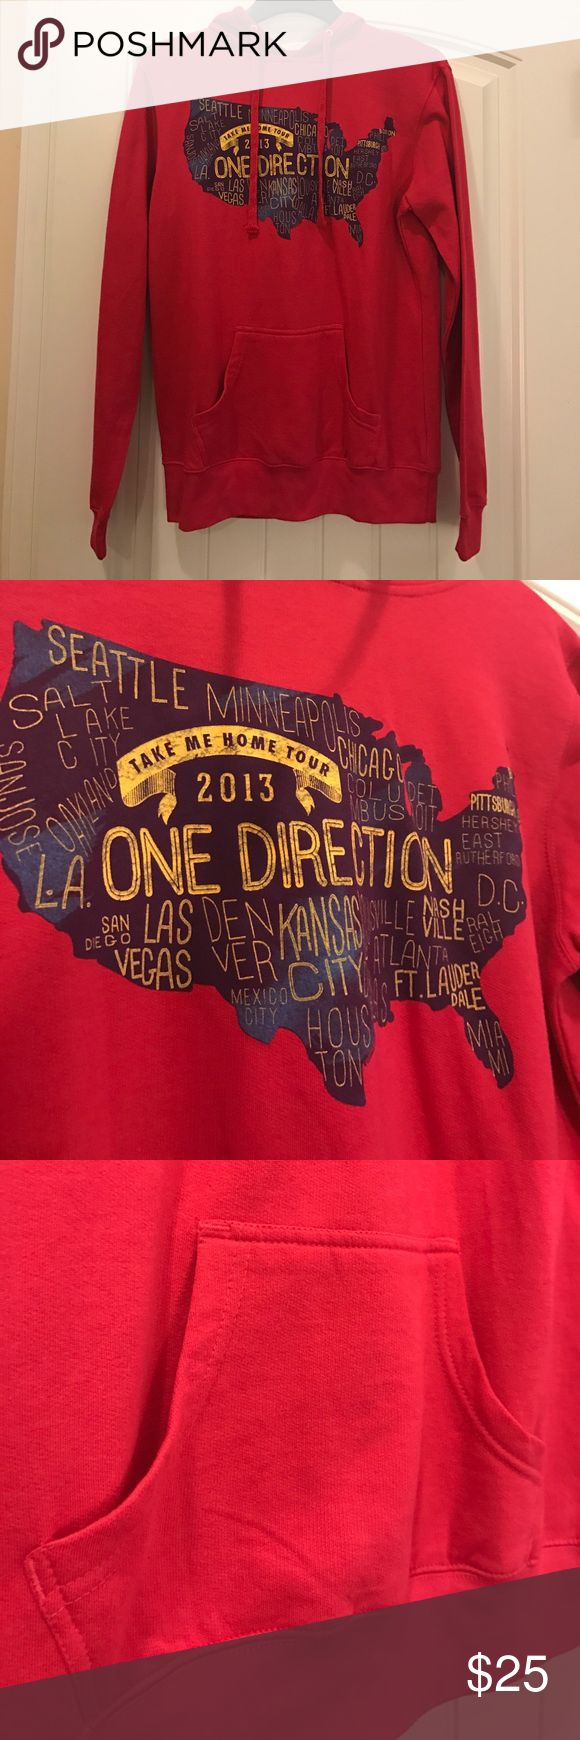 NEVER BEFORE WORN ONE DIRECTION PINK HOODIE This new One Direction Hoodie is adorable and from their 2013 Take Me Home Tour. It is really soft and perfect for Juniors! Independent Trading Company Tops Sweatshirts & Hoodies